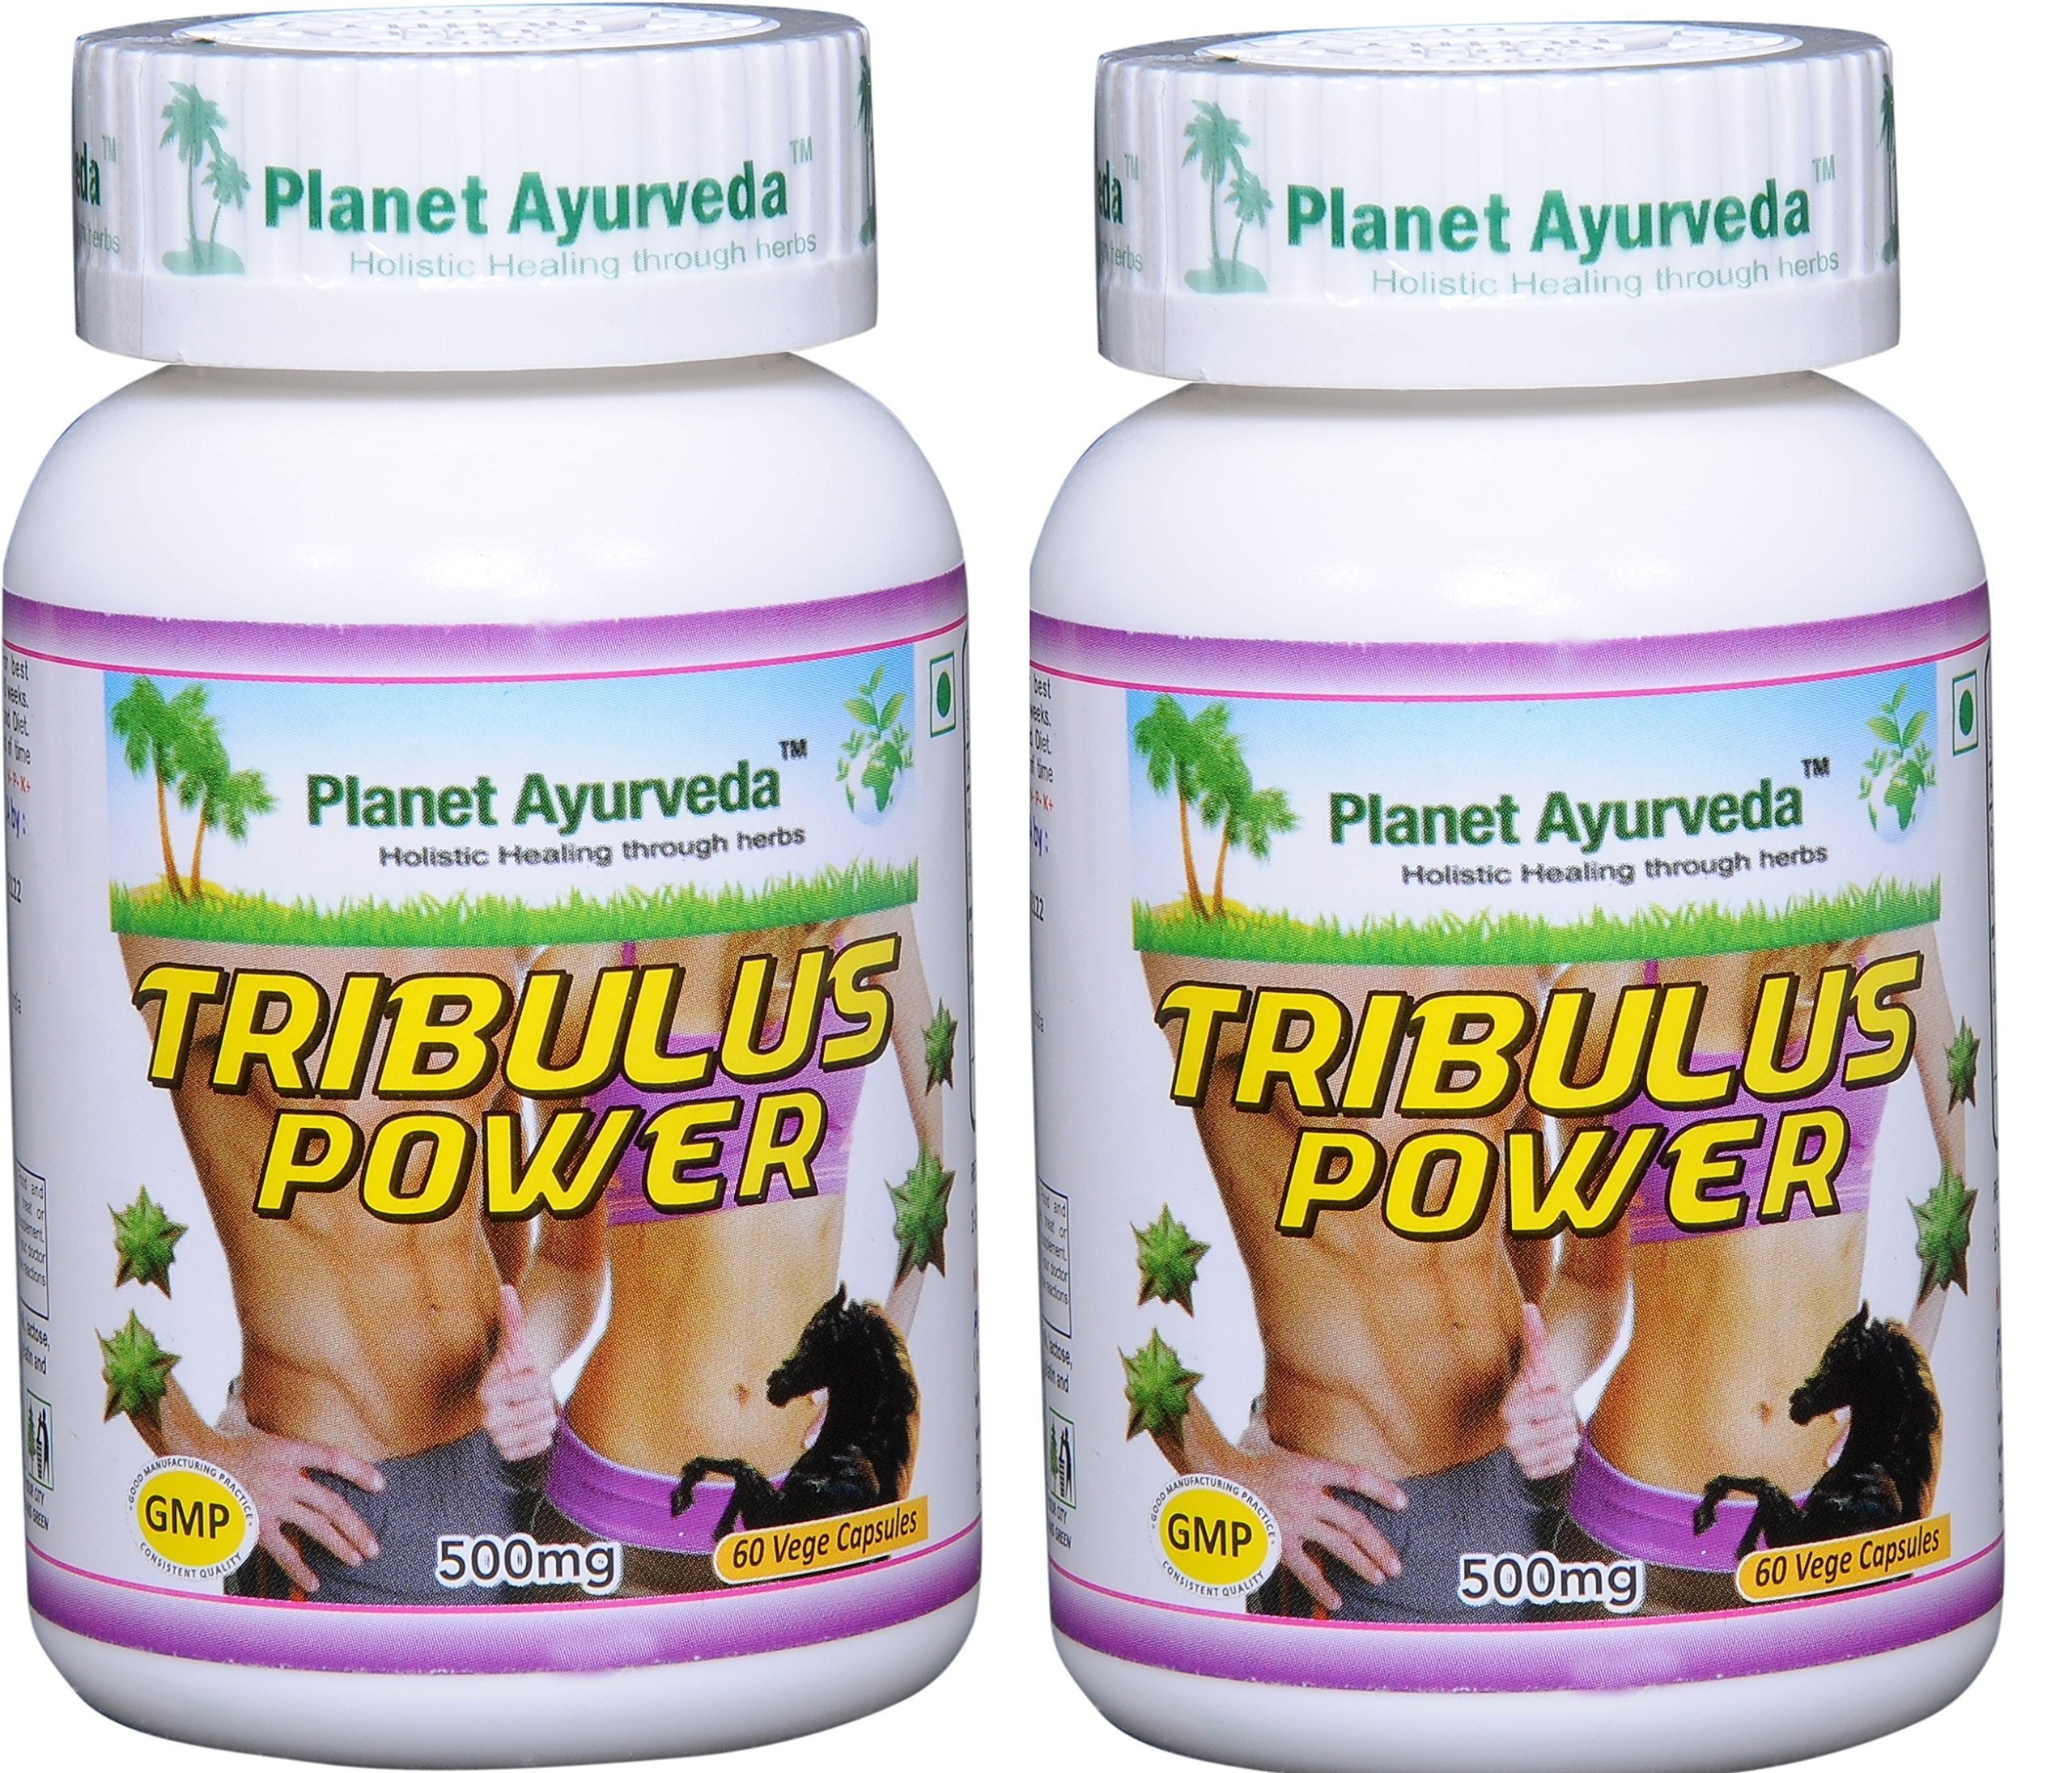 Planet Ayurveda Tribulus Power, 500mg Veg Capsules - 2 Bottles - Bring Out the Man in You